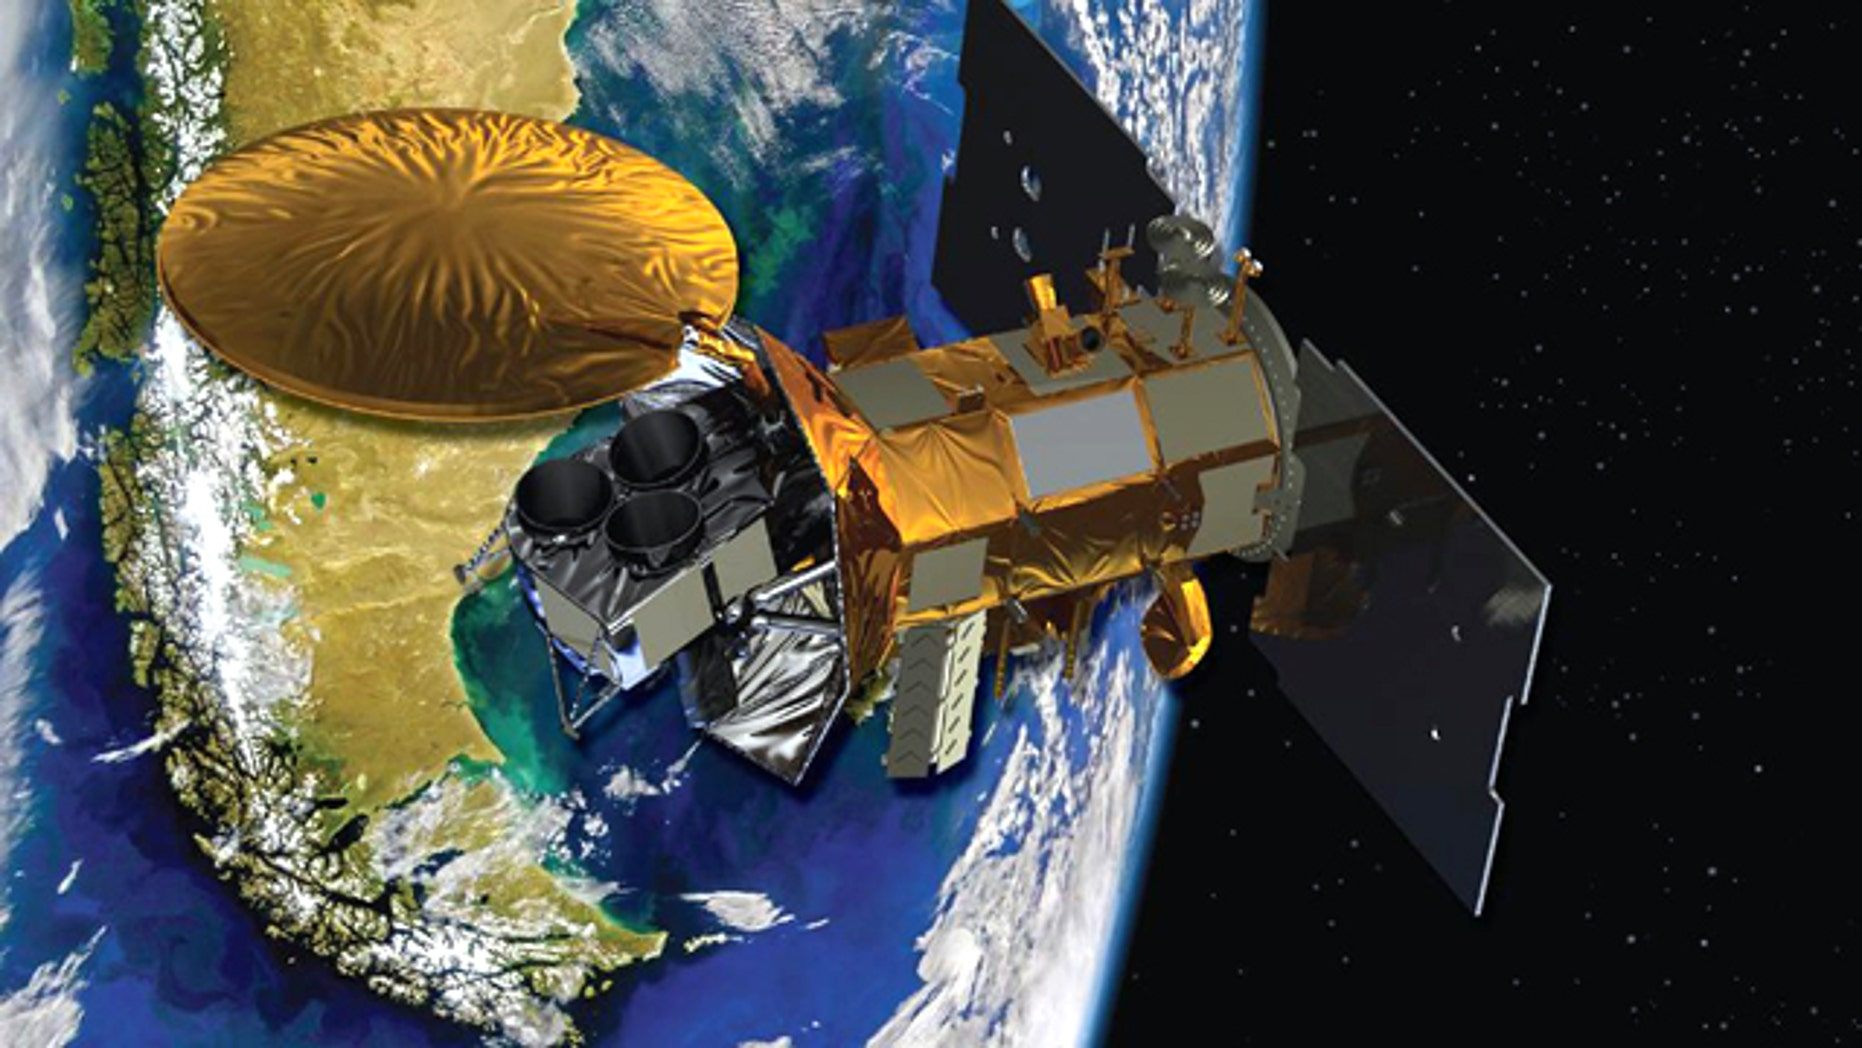 This image provided by NASA shows an artist's conception of the Aquarius/SAC-D spacecraft, a collaboration between NASA and Argentina's space agency, with participation from Brazil, Canada, France and Italy. Aquarius, the NASA-built primary instrument on the spacecraft, will take NASA's first space-based measurements of ocean surface salinity, a key missing variable in satellite observations of Earth that links ocean circulation, the global balance of freshwater and climate.